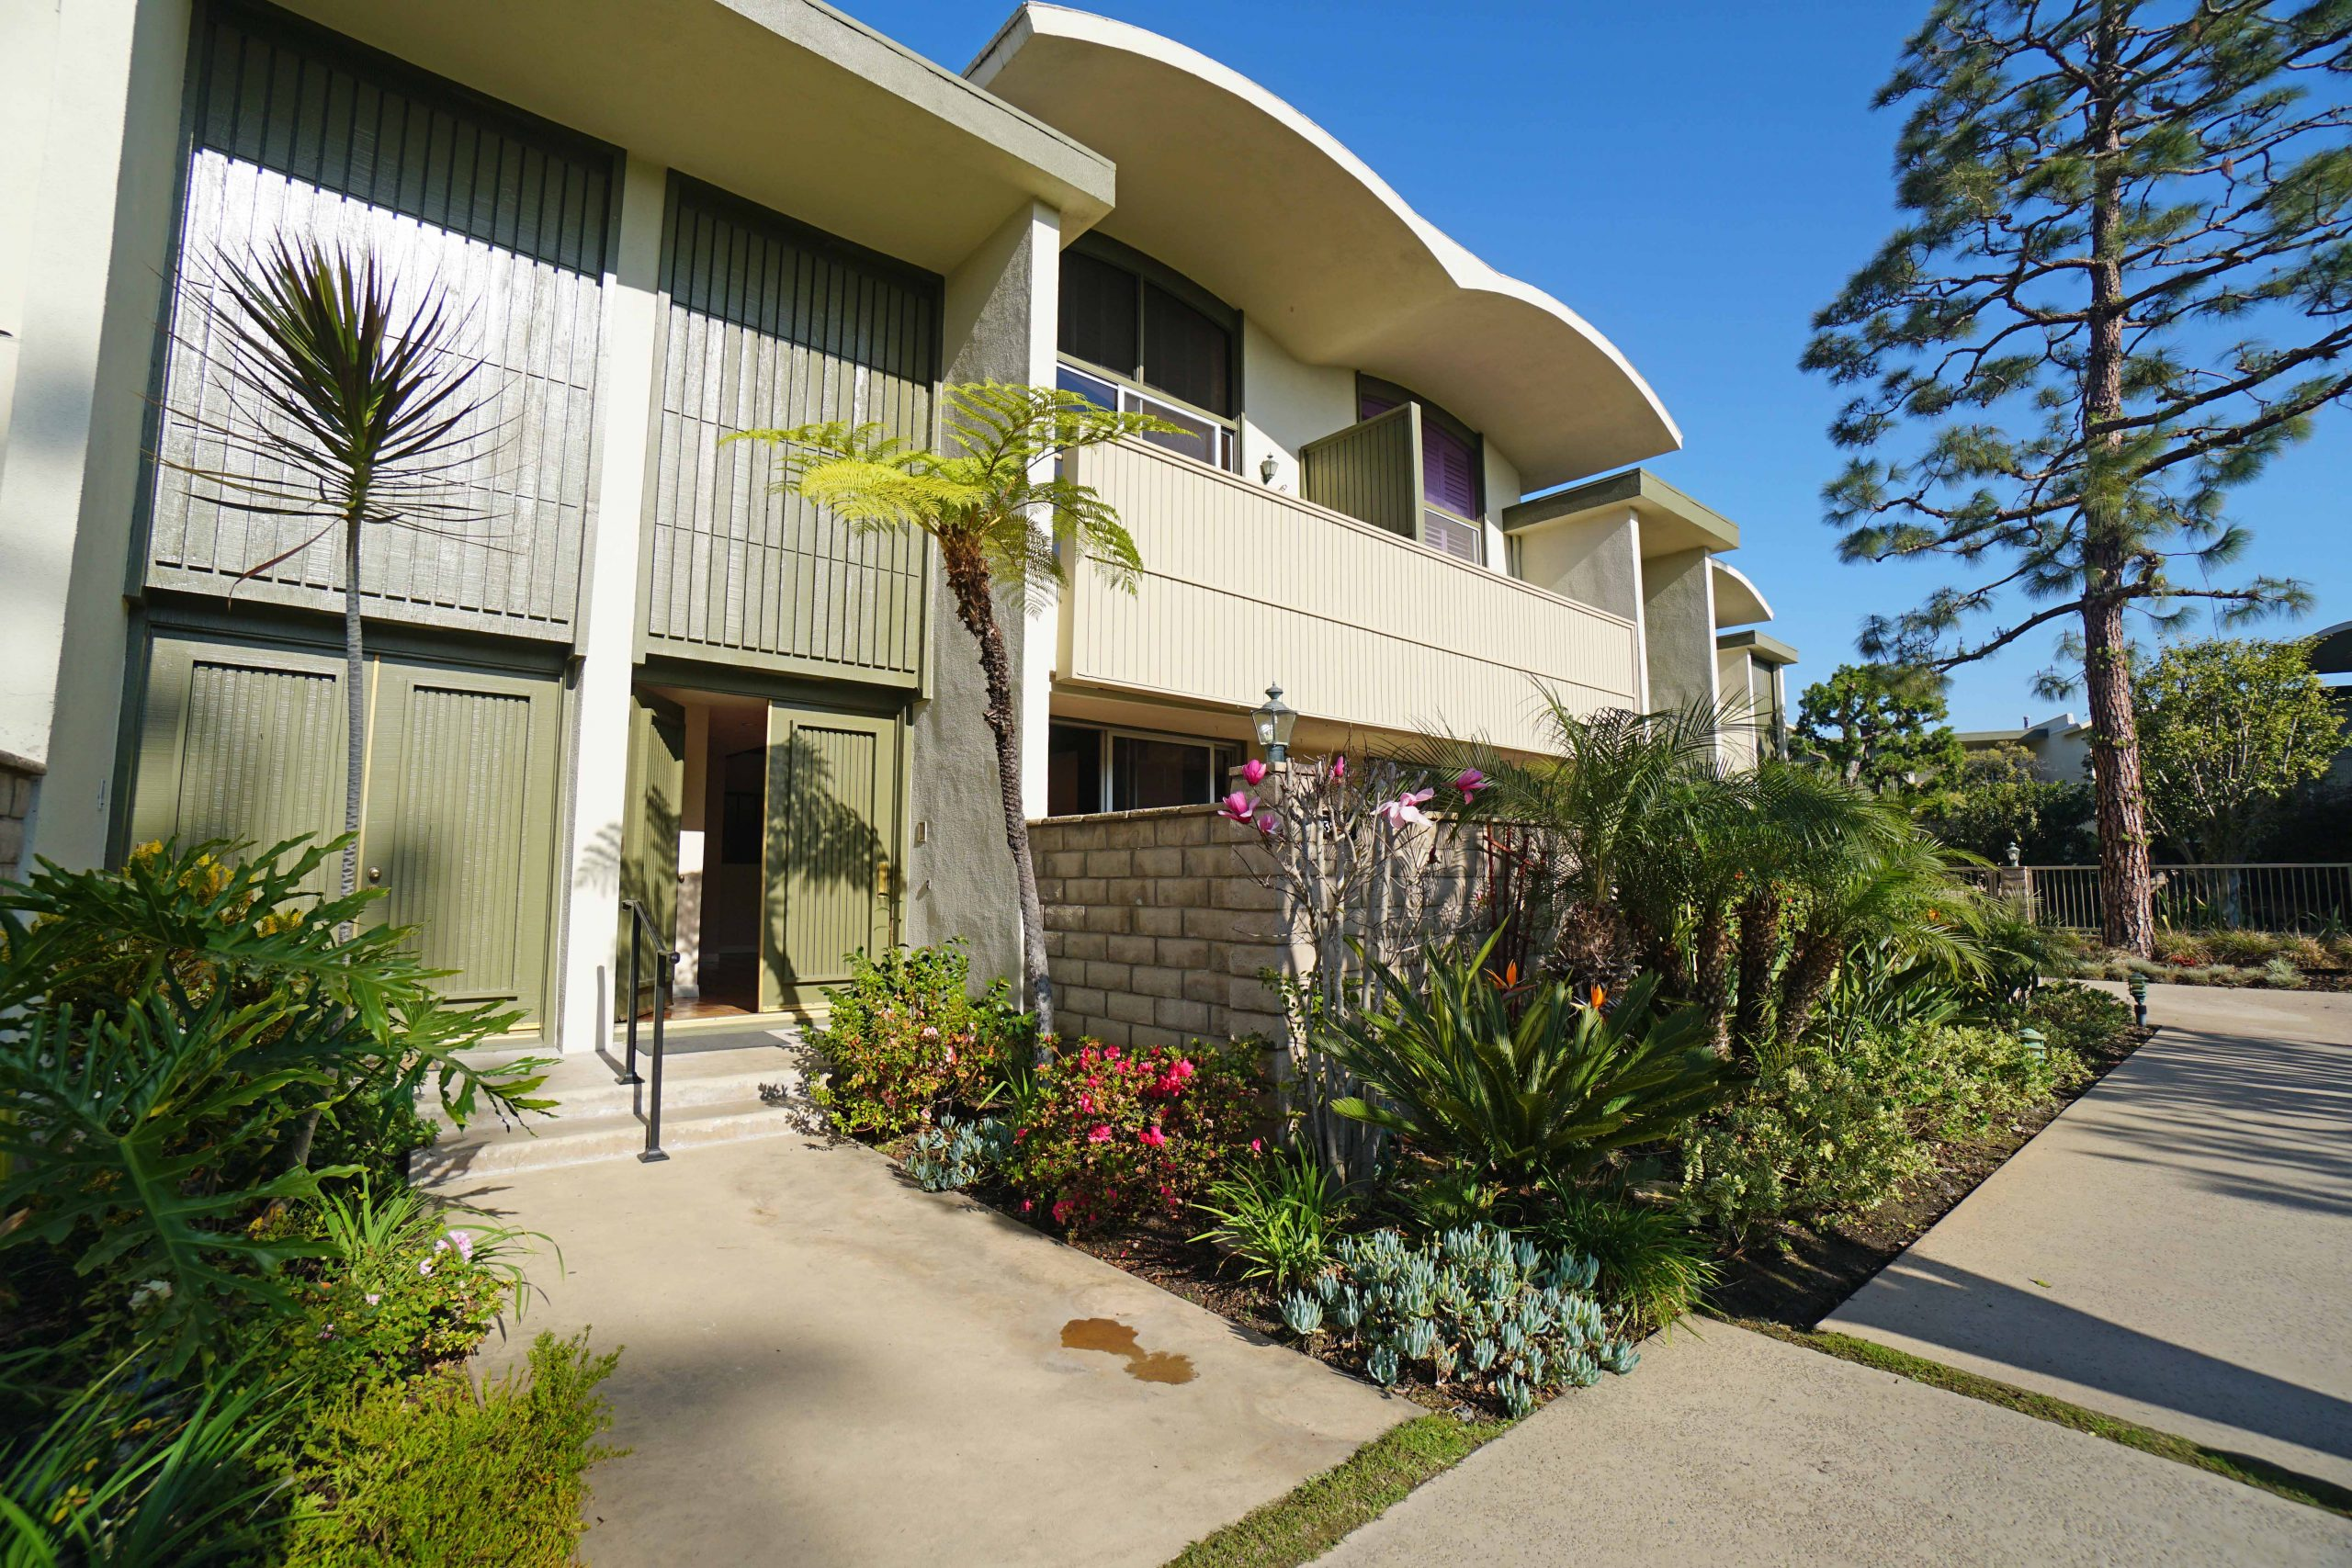 For Lease – 13214 Fiji Way #D, Marina del Rey – $4,850/month